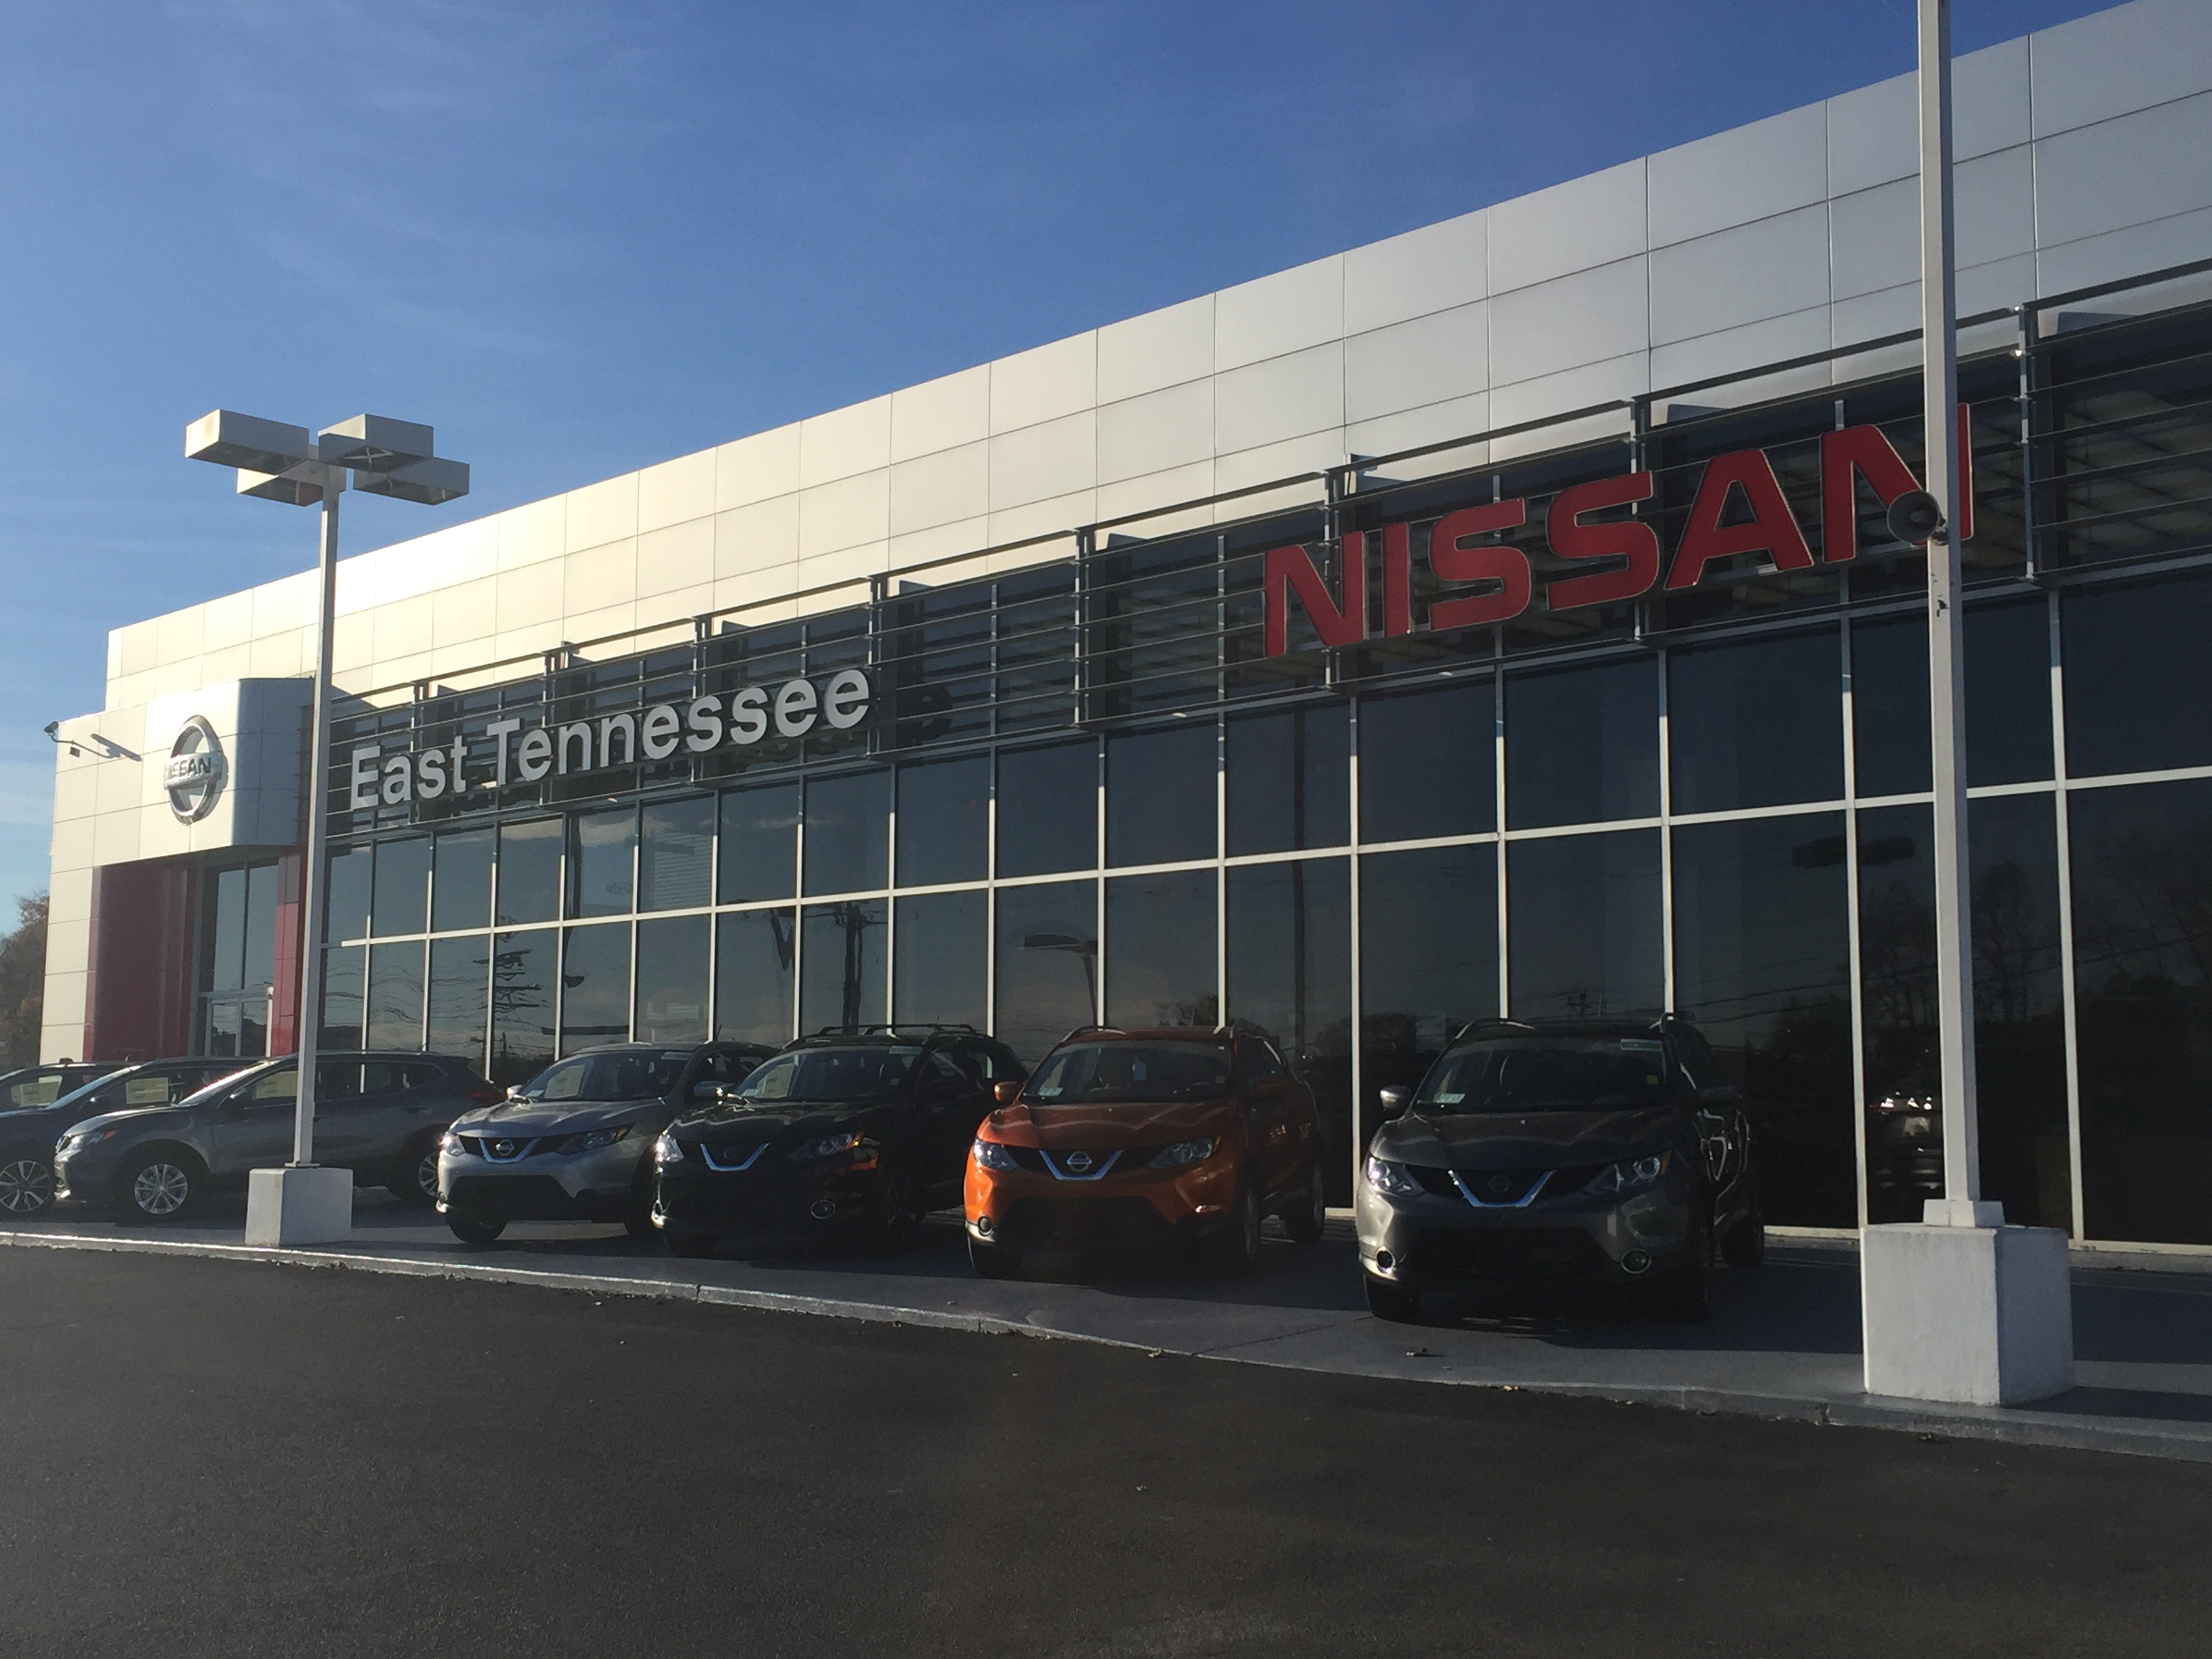 east tennessee nissan 5496 w andrew johnson hwy morristown tn 37814. Black Bedroom Furniture Sets. Home Design Ideas